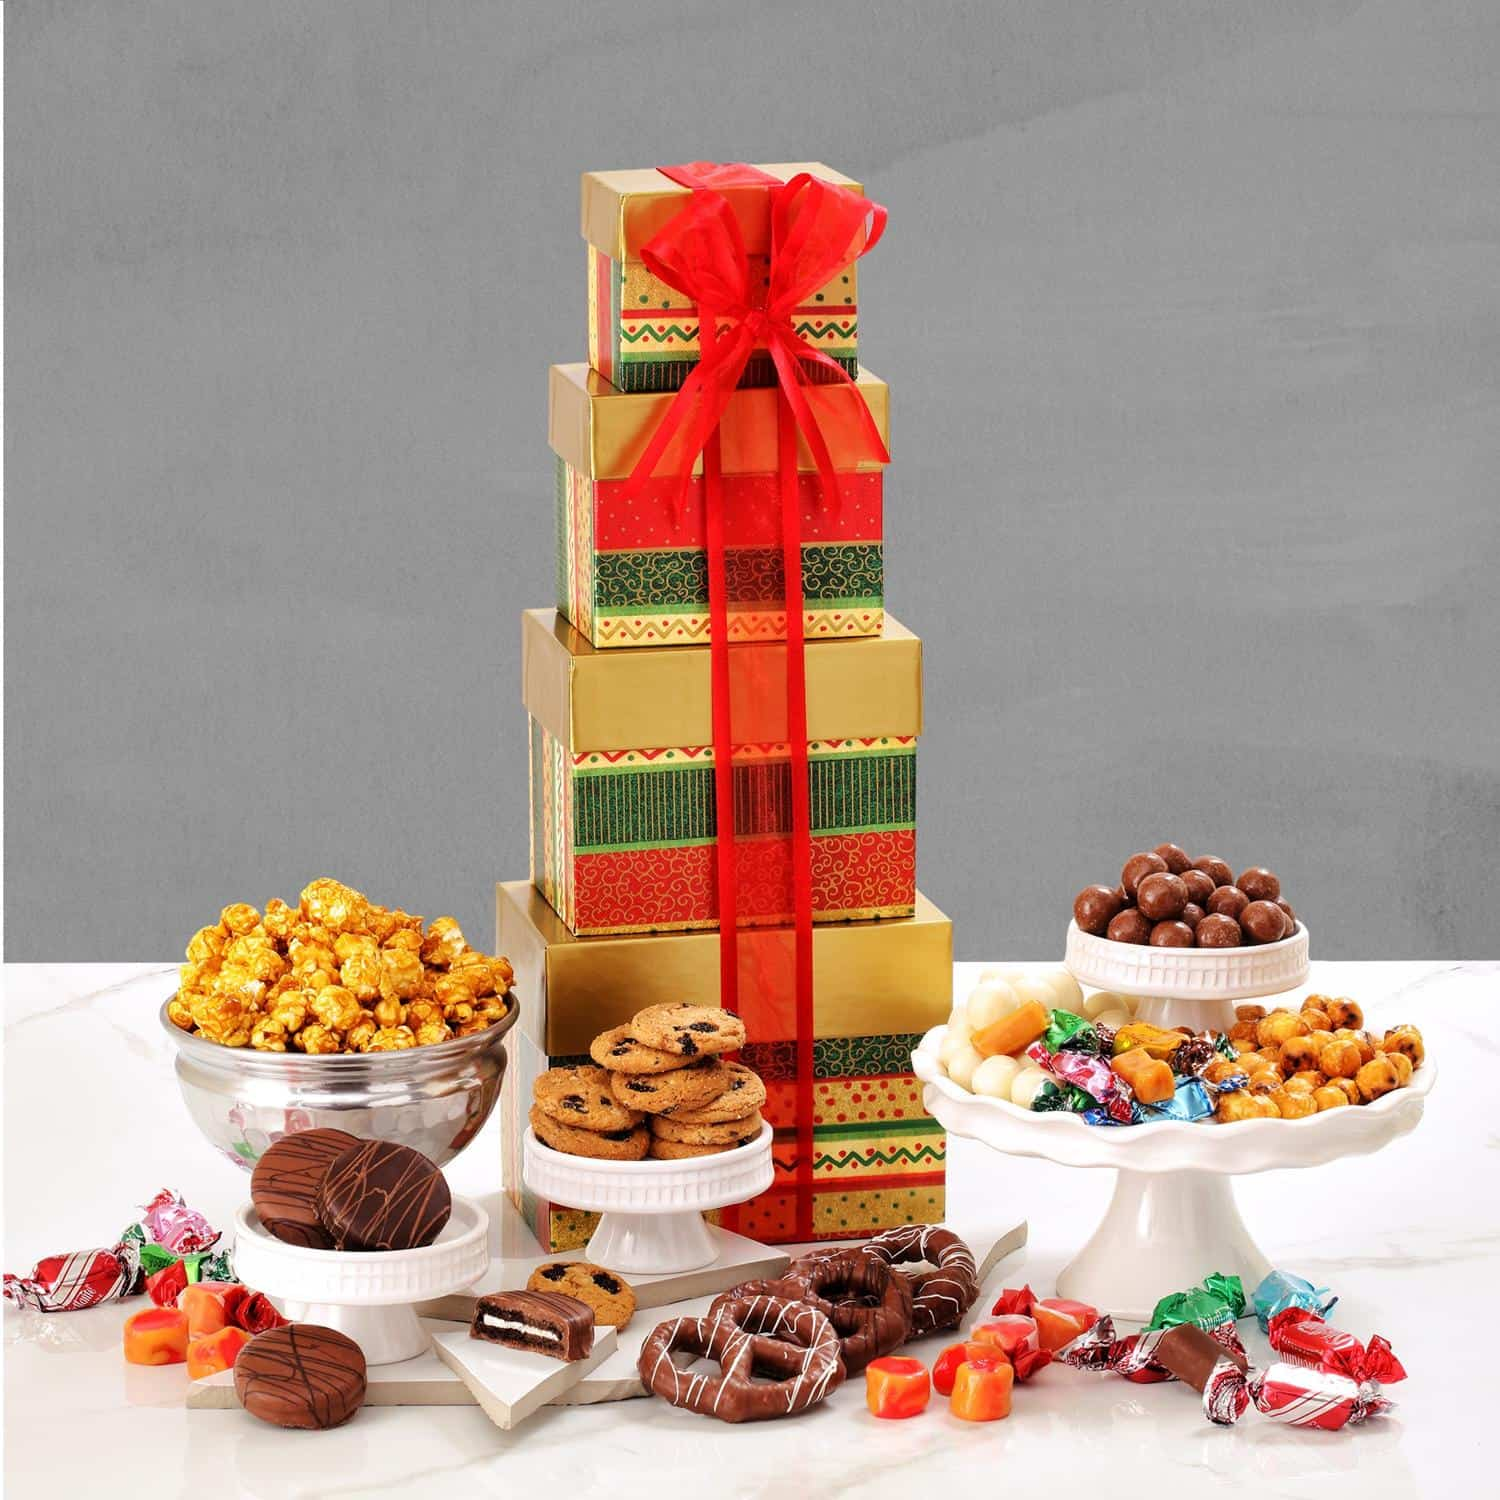 Christmas Gift Baskets For Families: Mistletoe Memories Holiday Gift Tower By